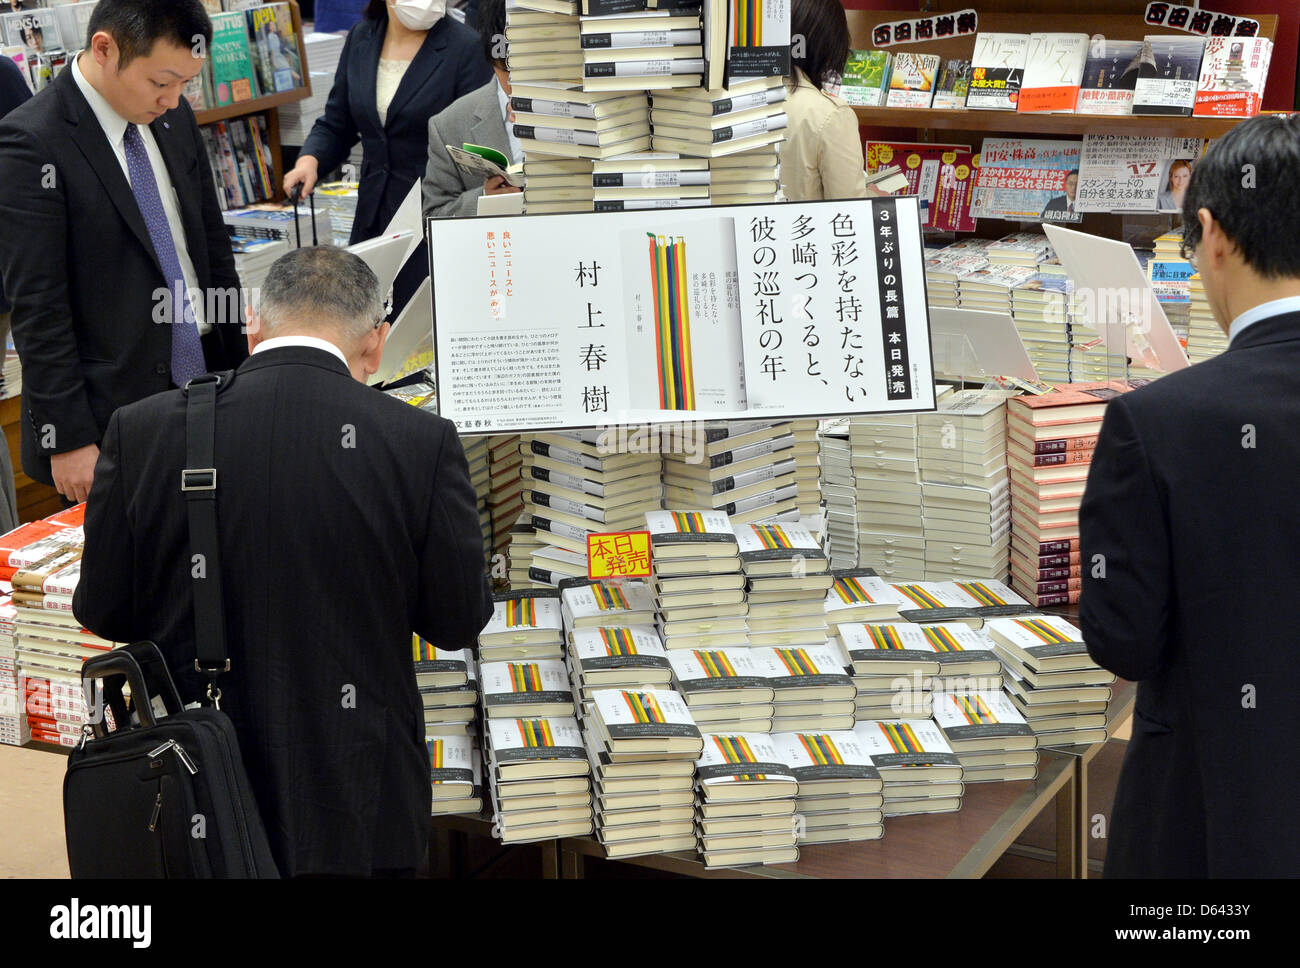 Tokyo, Japan. 12th April 2013. Copies of long-awaited novel of Japanese author Haruki Murakami are stacked up high - Stock Image